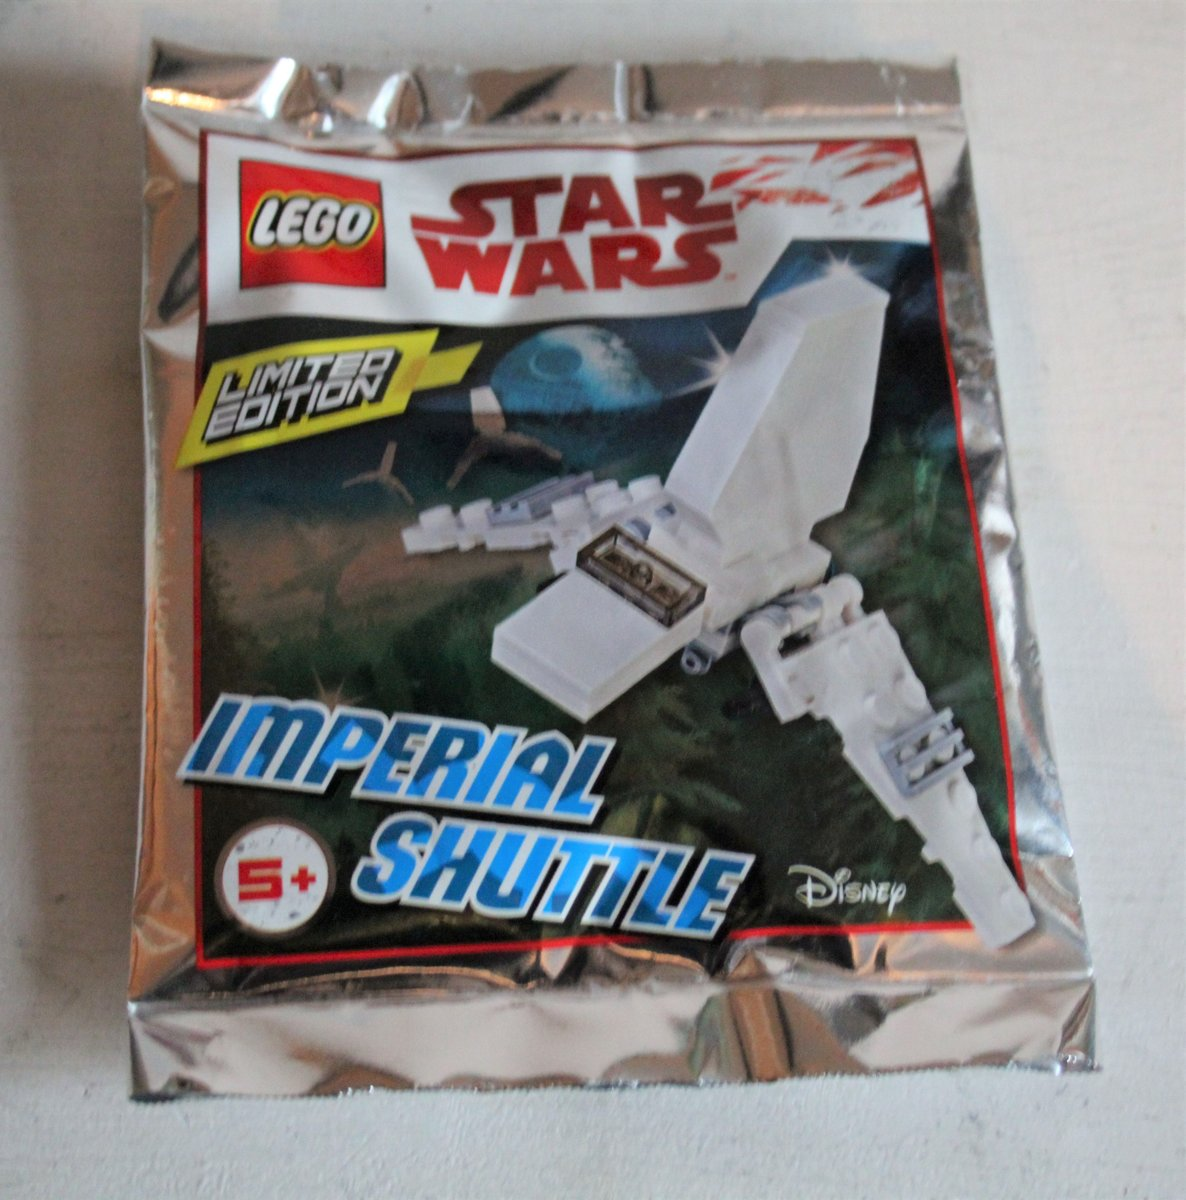 Lego Star Wars Imperial Shuttle (polybag)